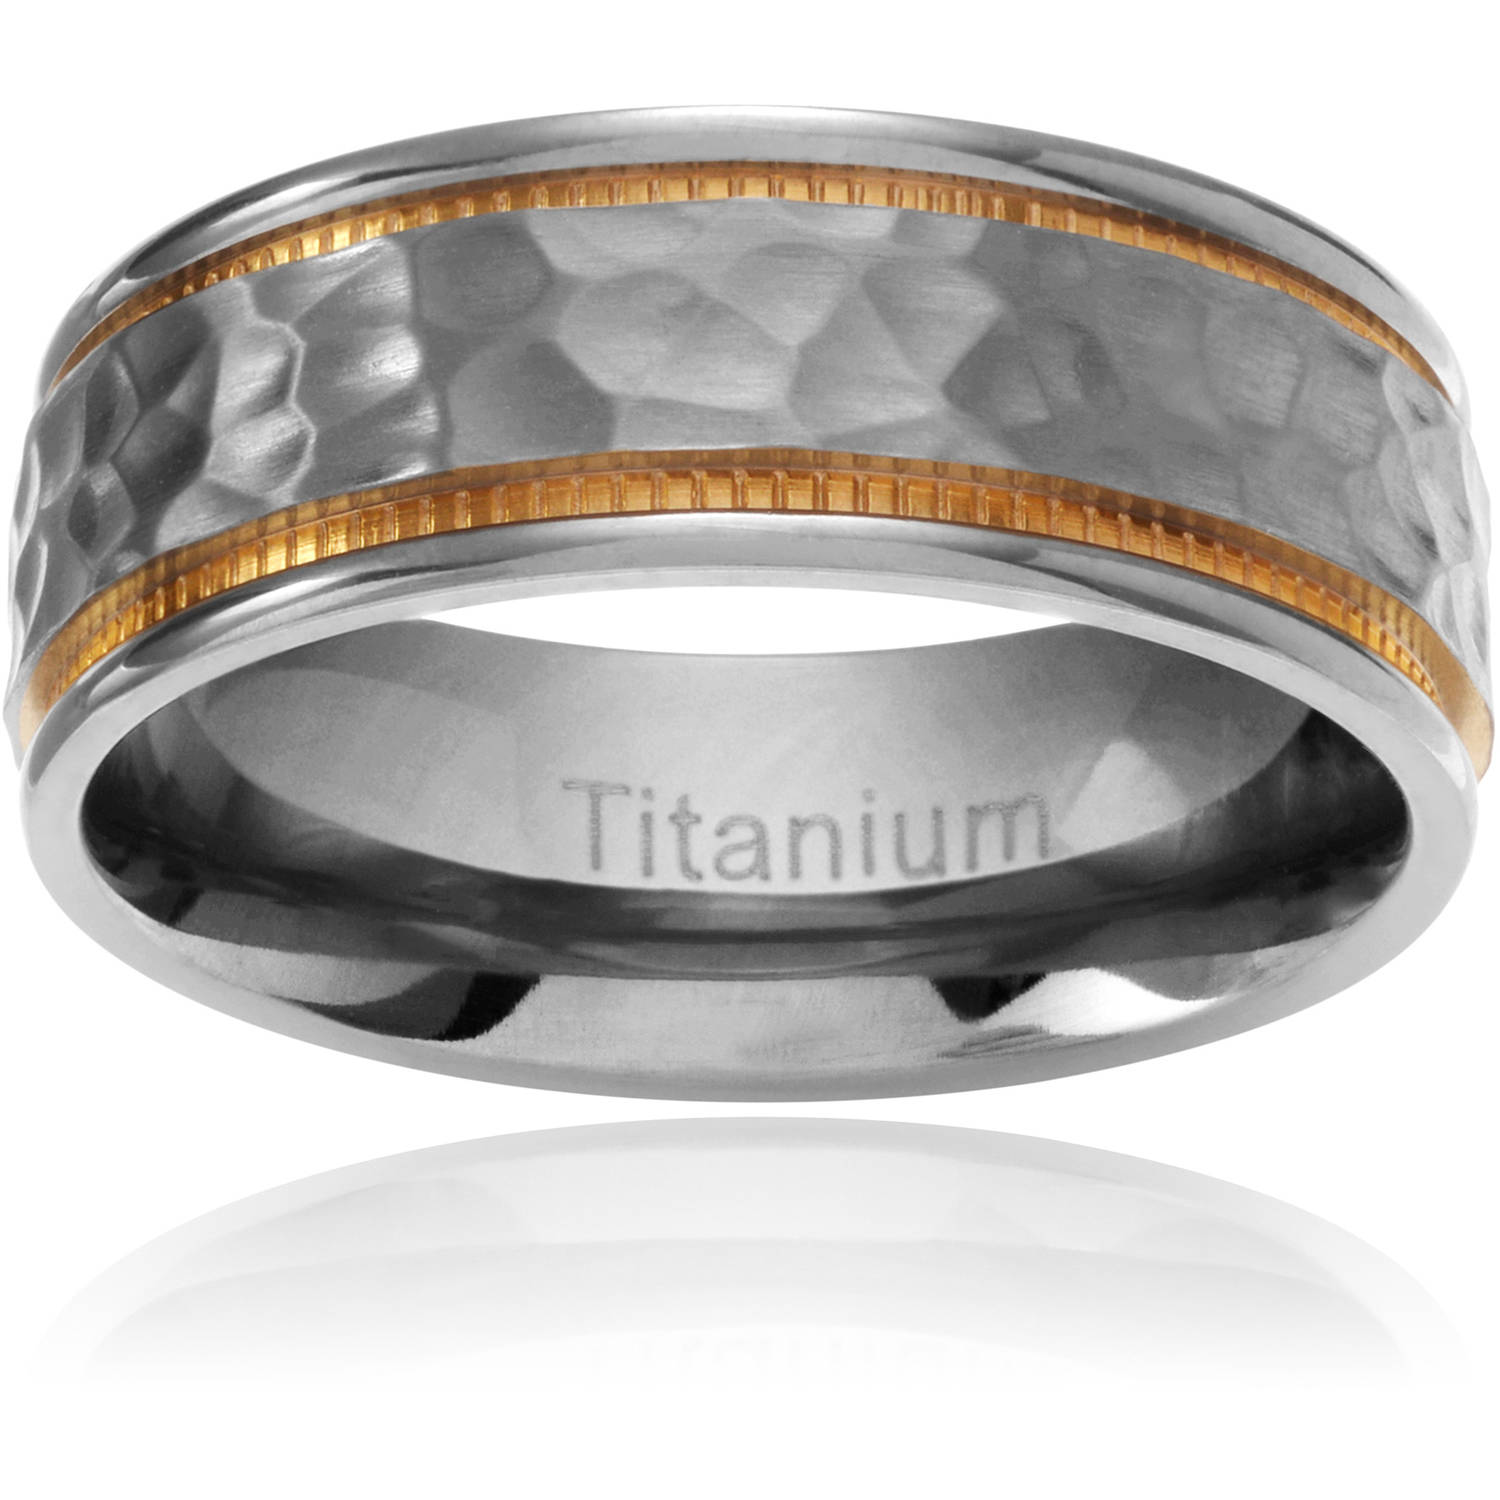 Daxx Men's Titanium Yellow Ion-Plated Hammered Wedding Band, 7mm